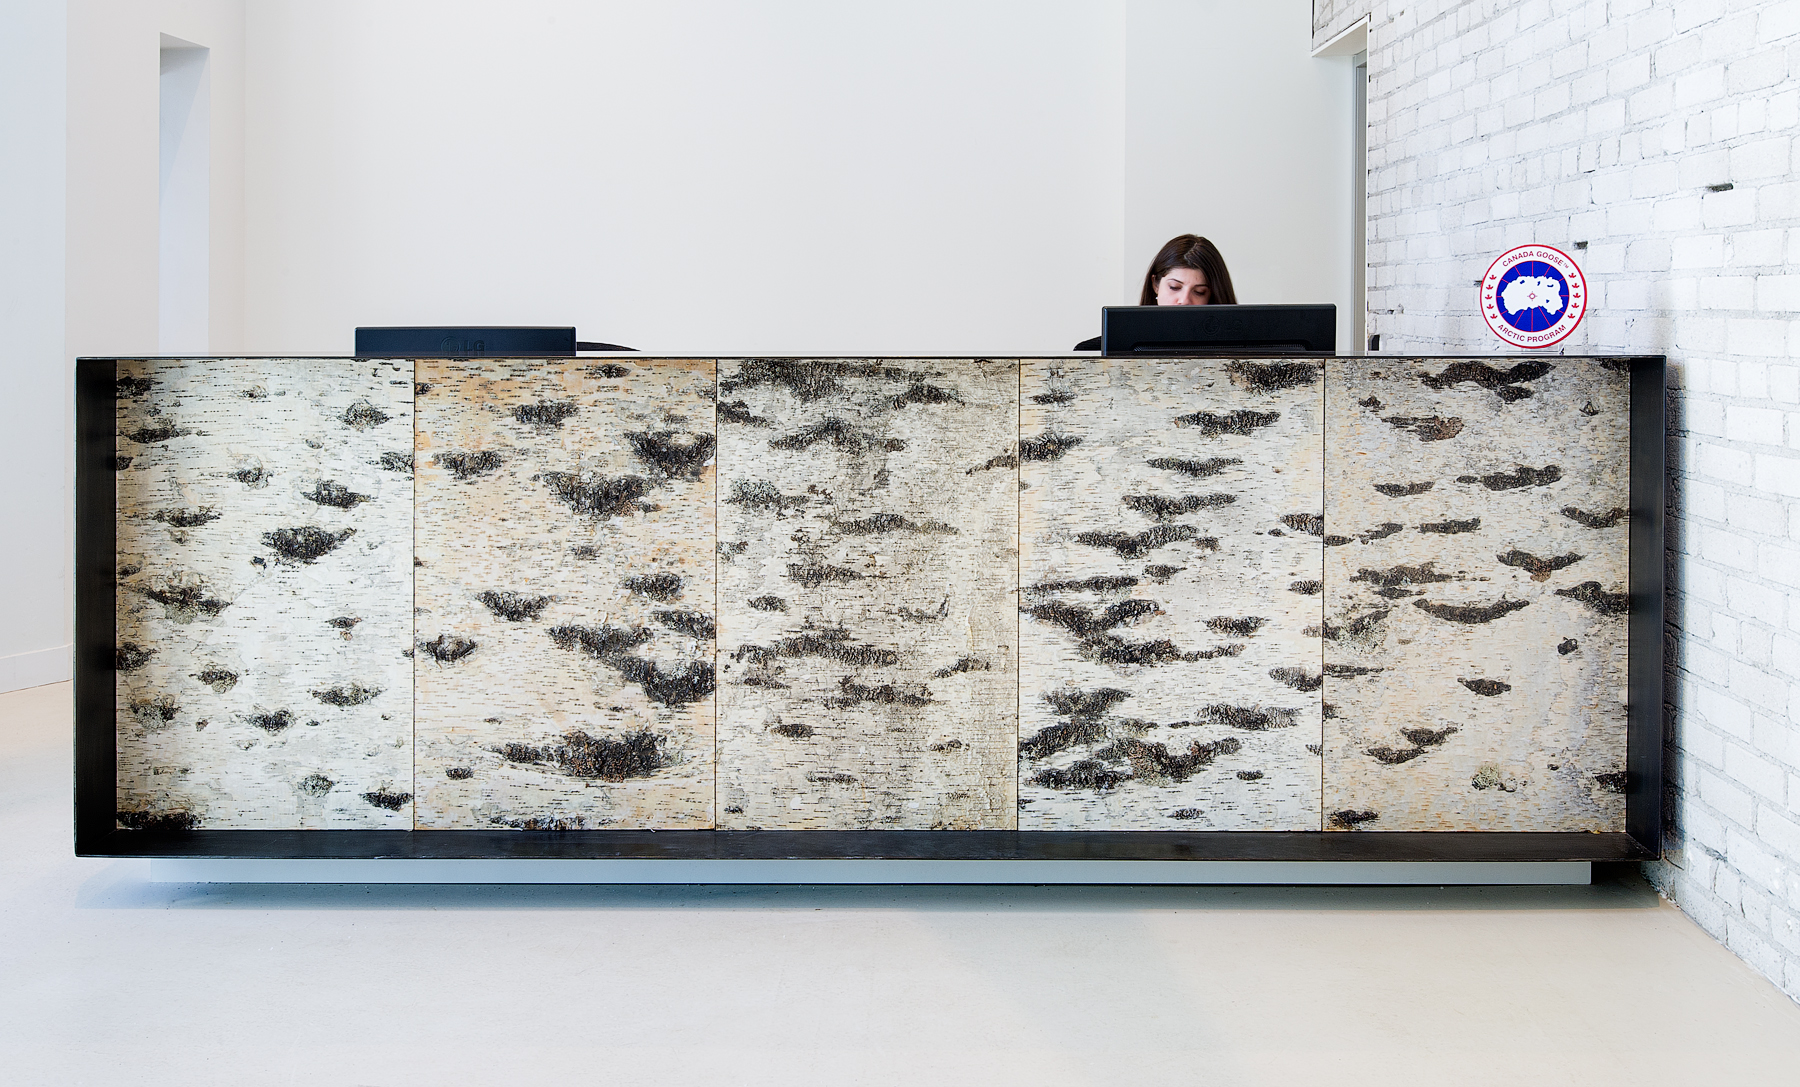 Canada Goose reception desk covered in birch bark, sitting in front of white brick walls with company logo